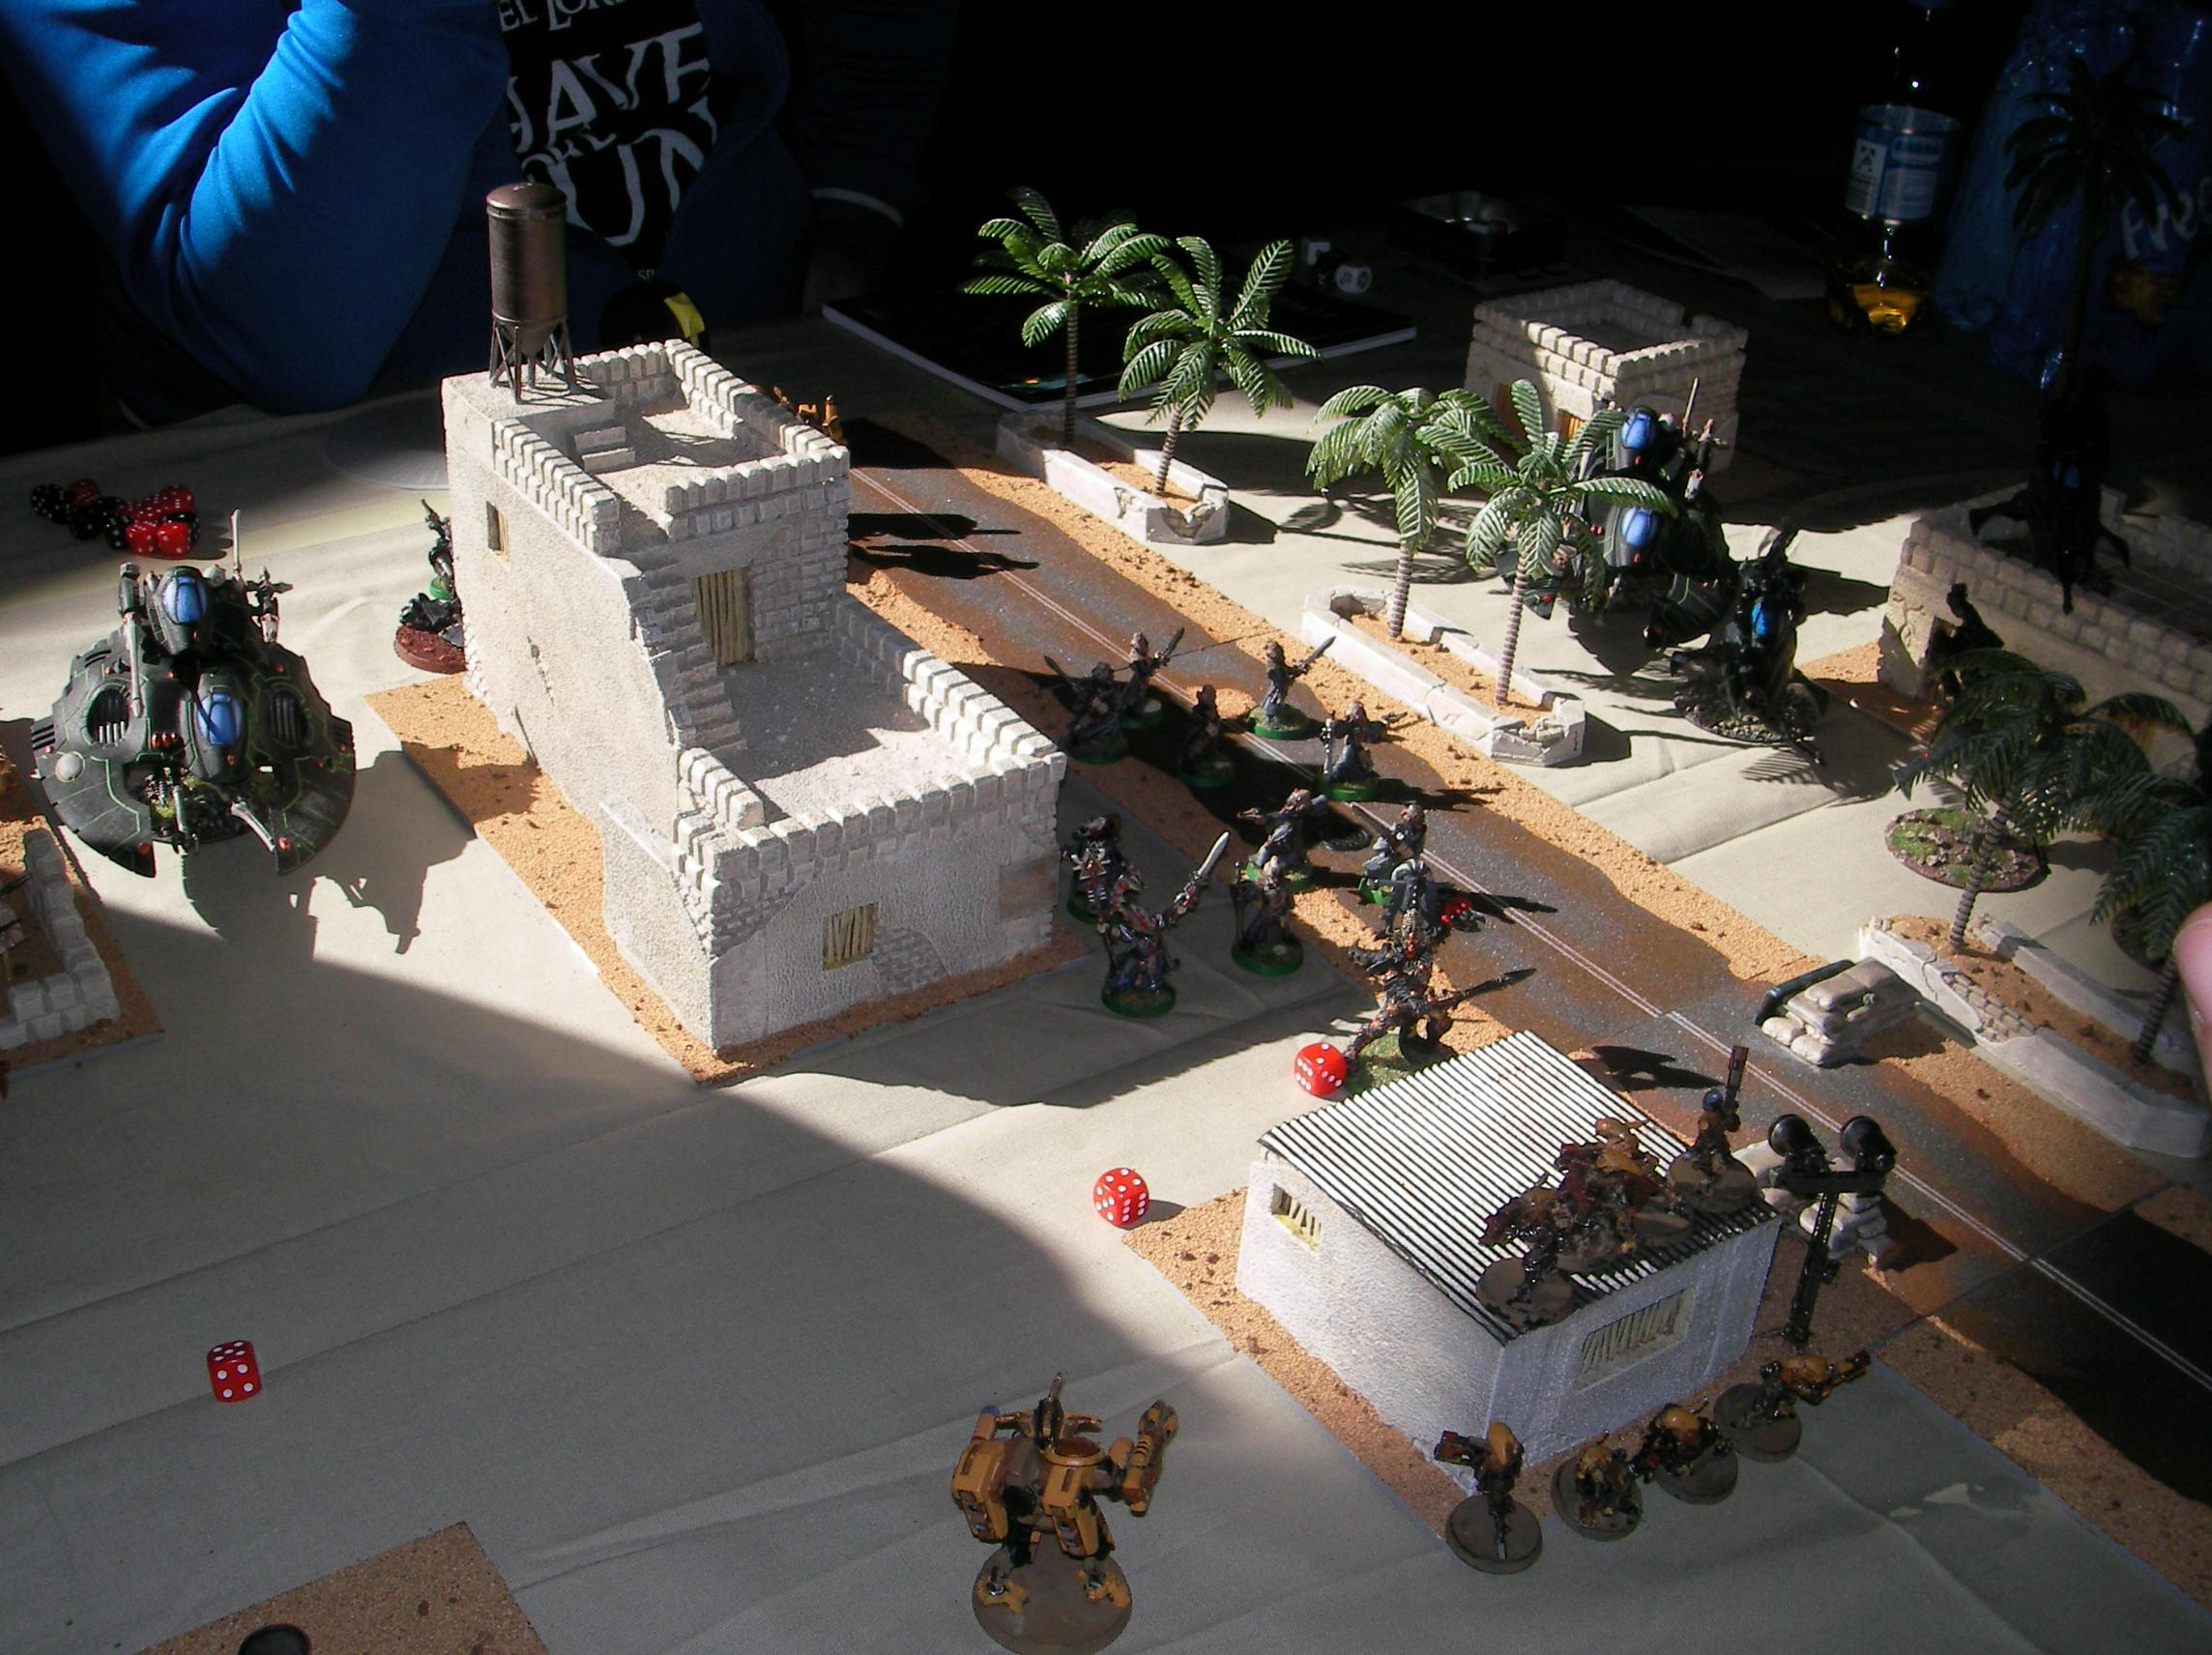 Evolution, Game Table, Iraq, Middle East, Middle Eastern, Modern, Terrain, Town, Warhammer 40,000